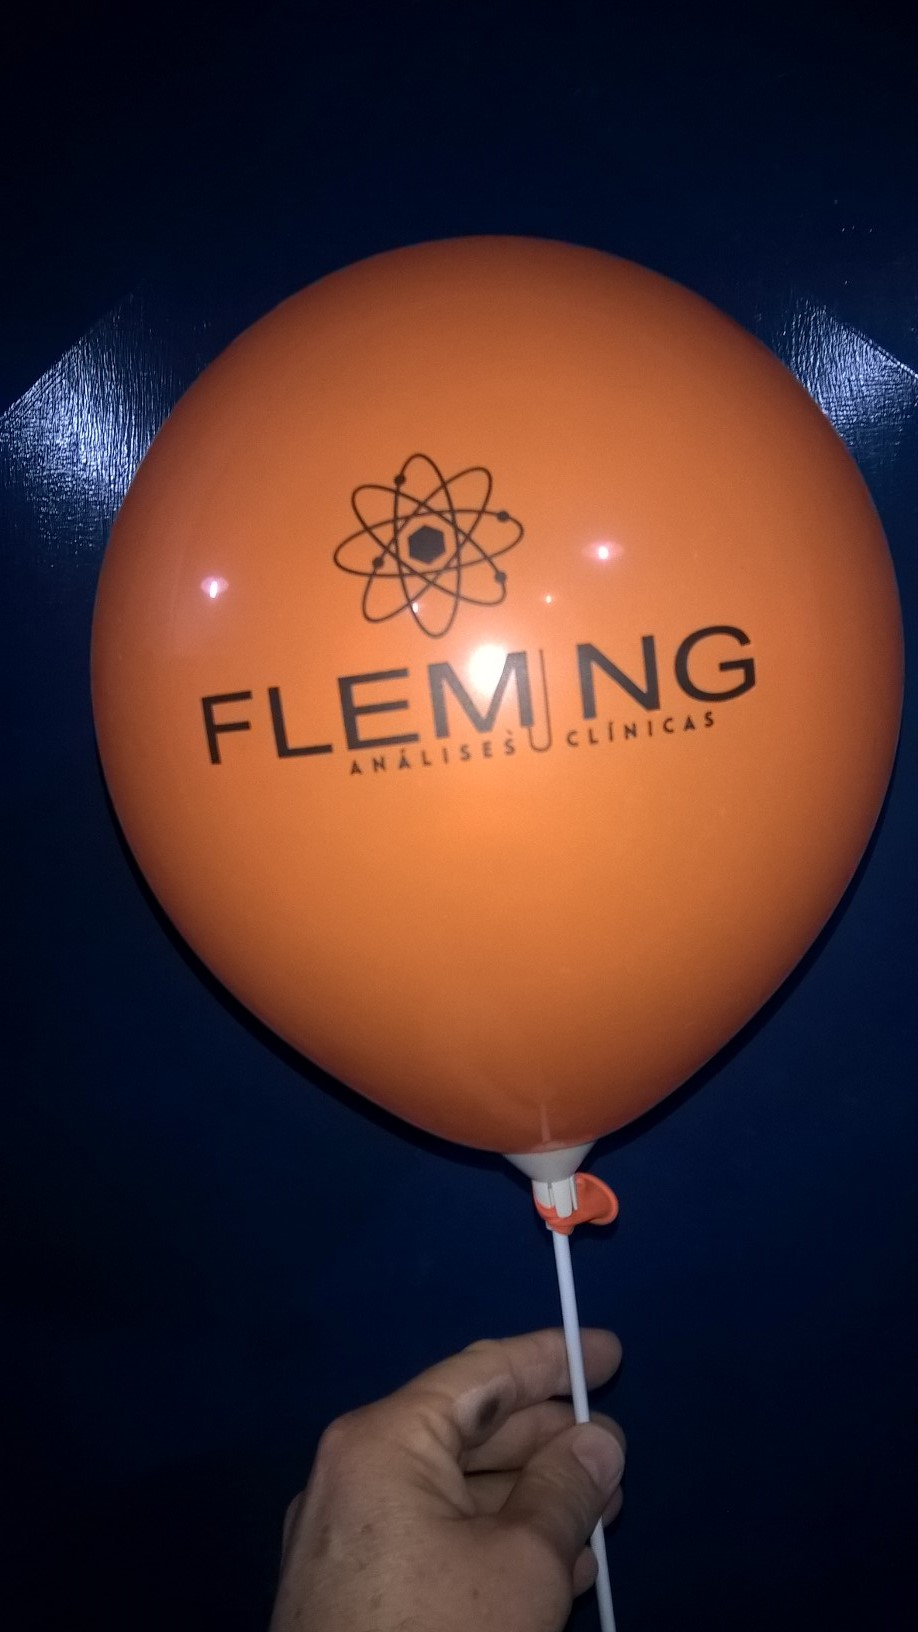 Laboratorio Fleming